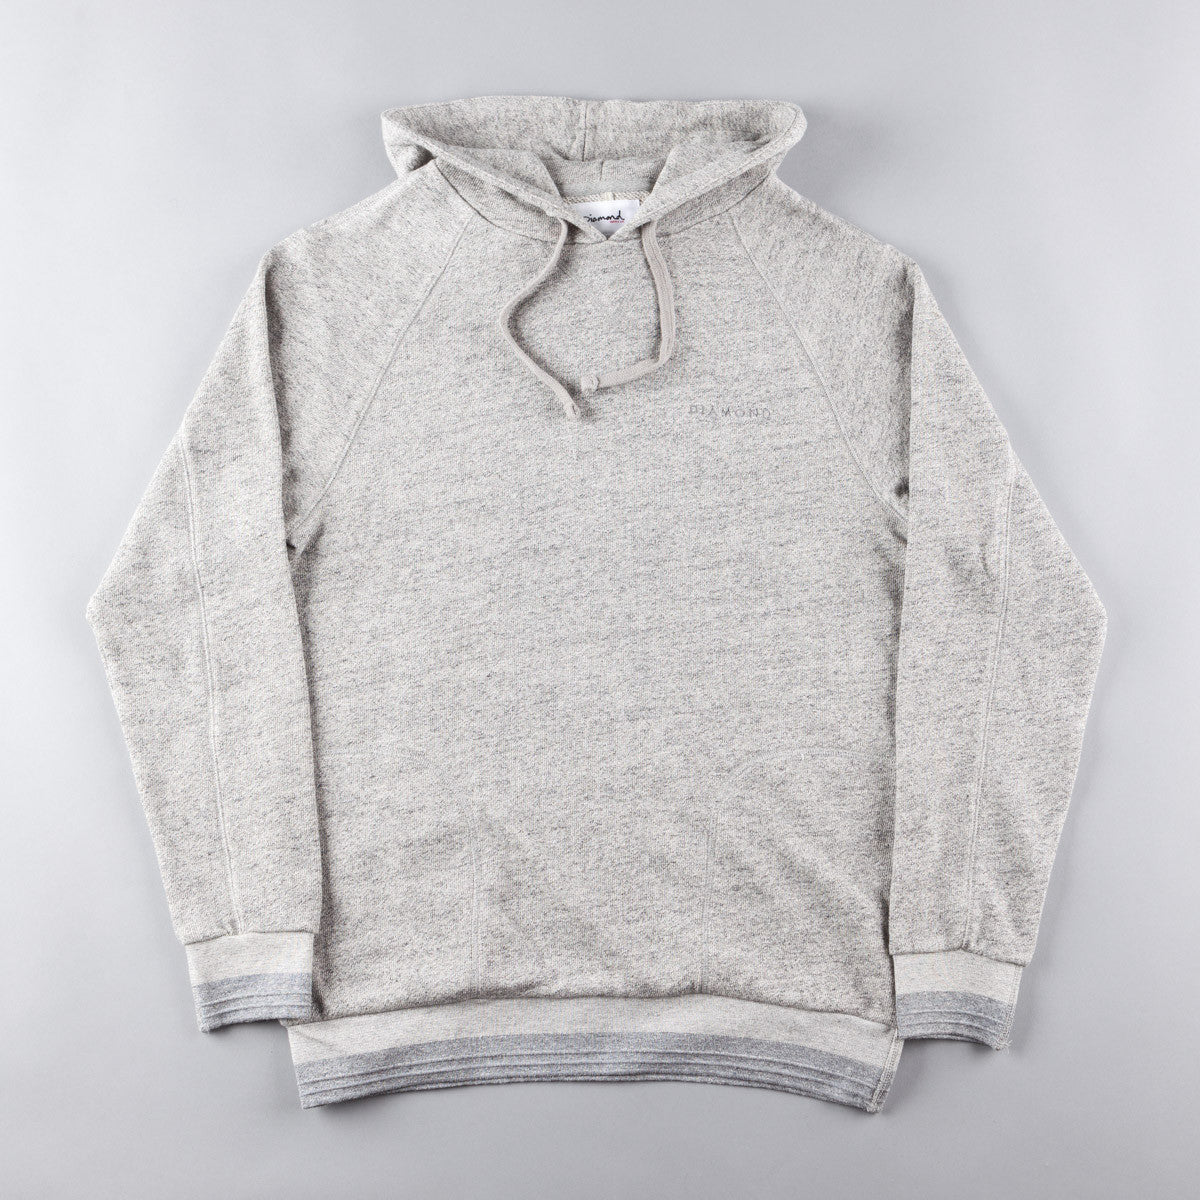 Diamond Facet Hooded Sweatshirt